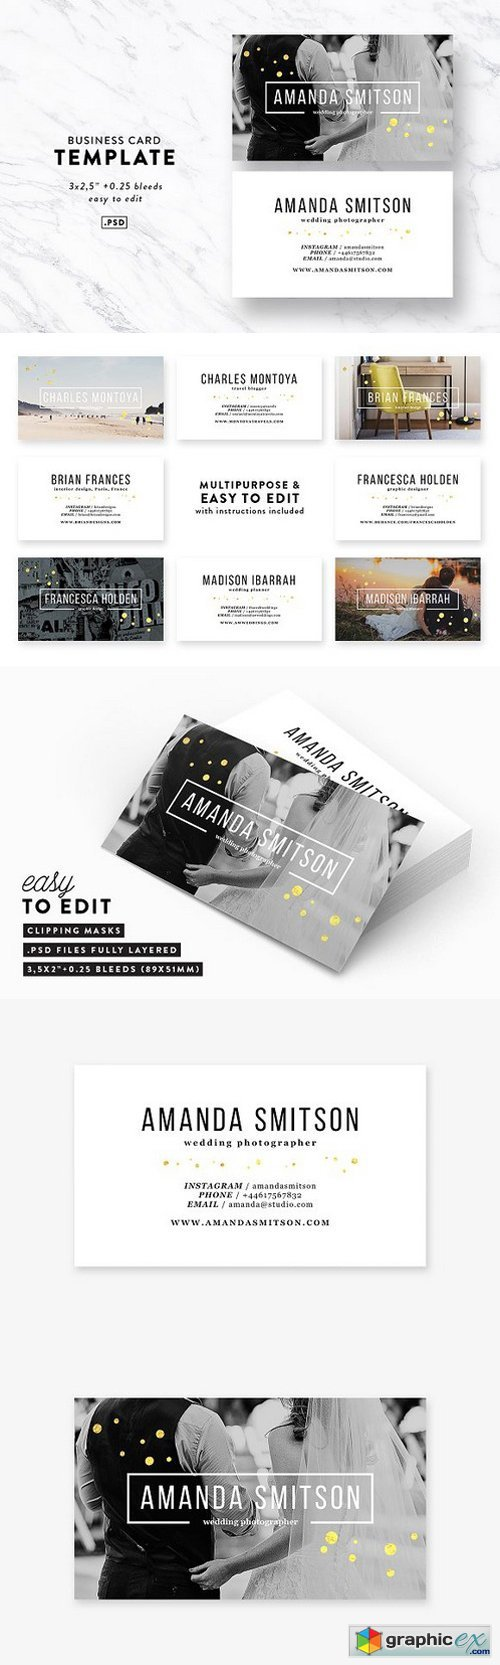 Photography Business Card Template 1594330